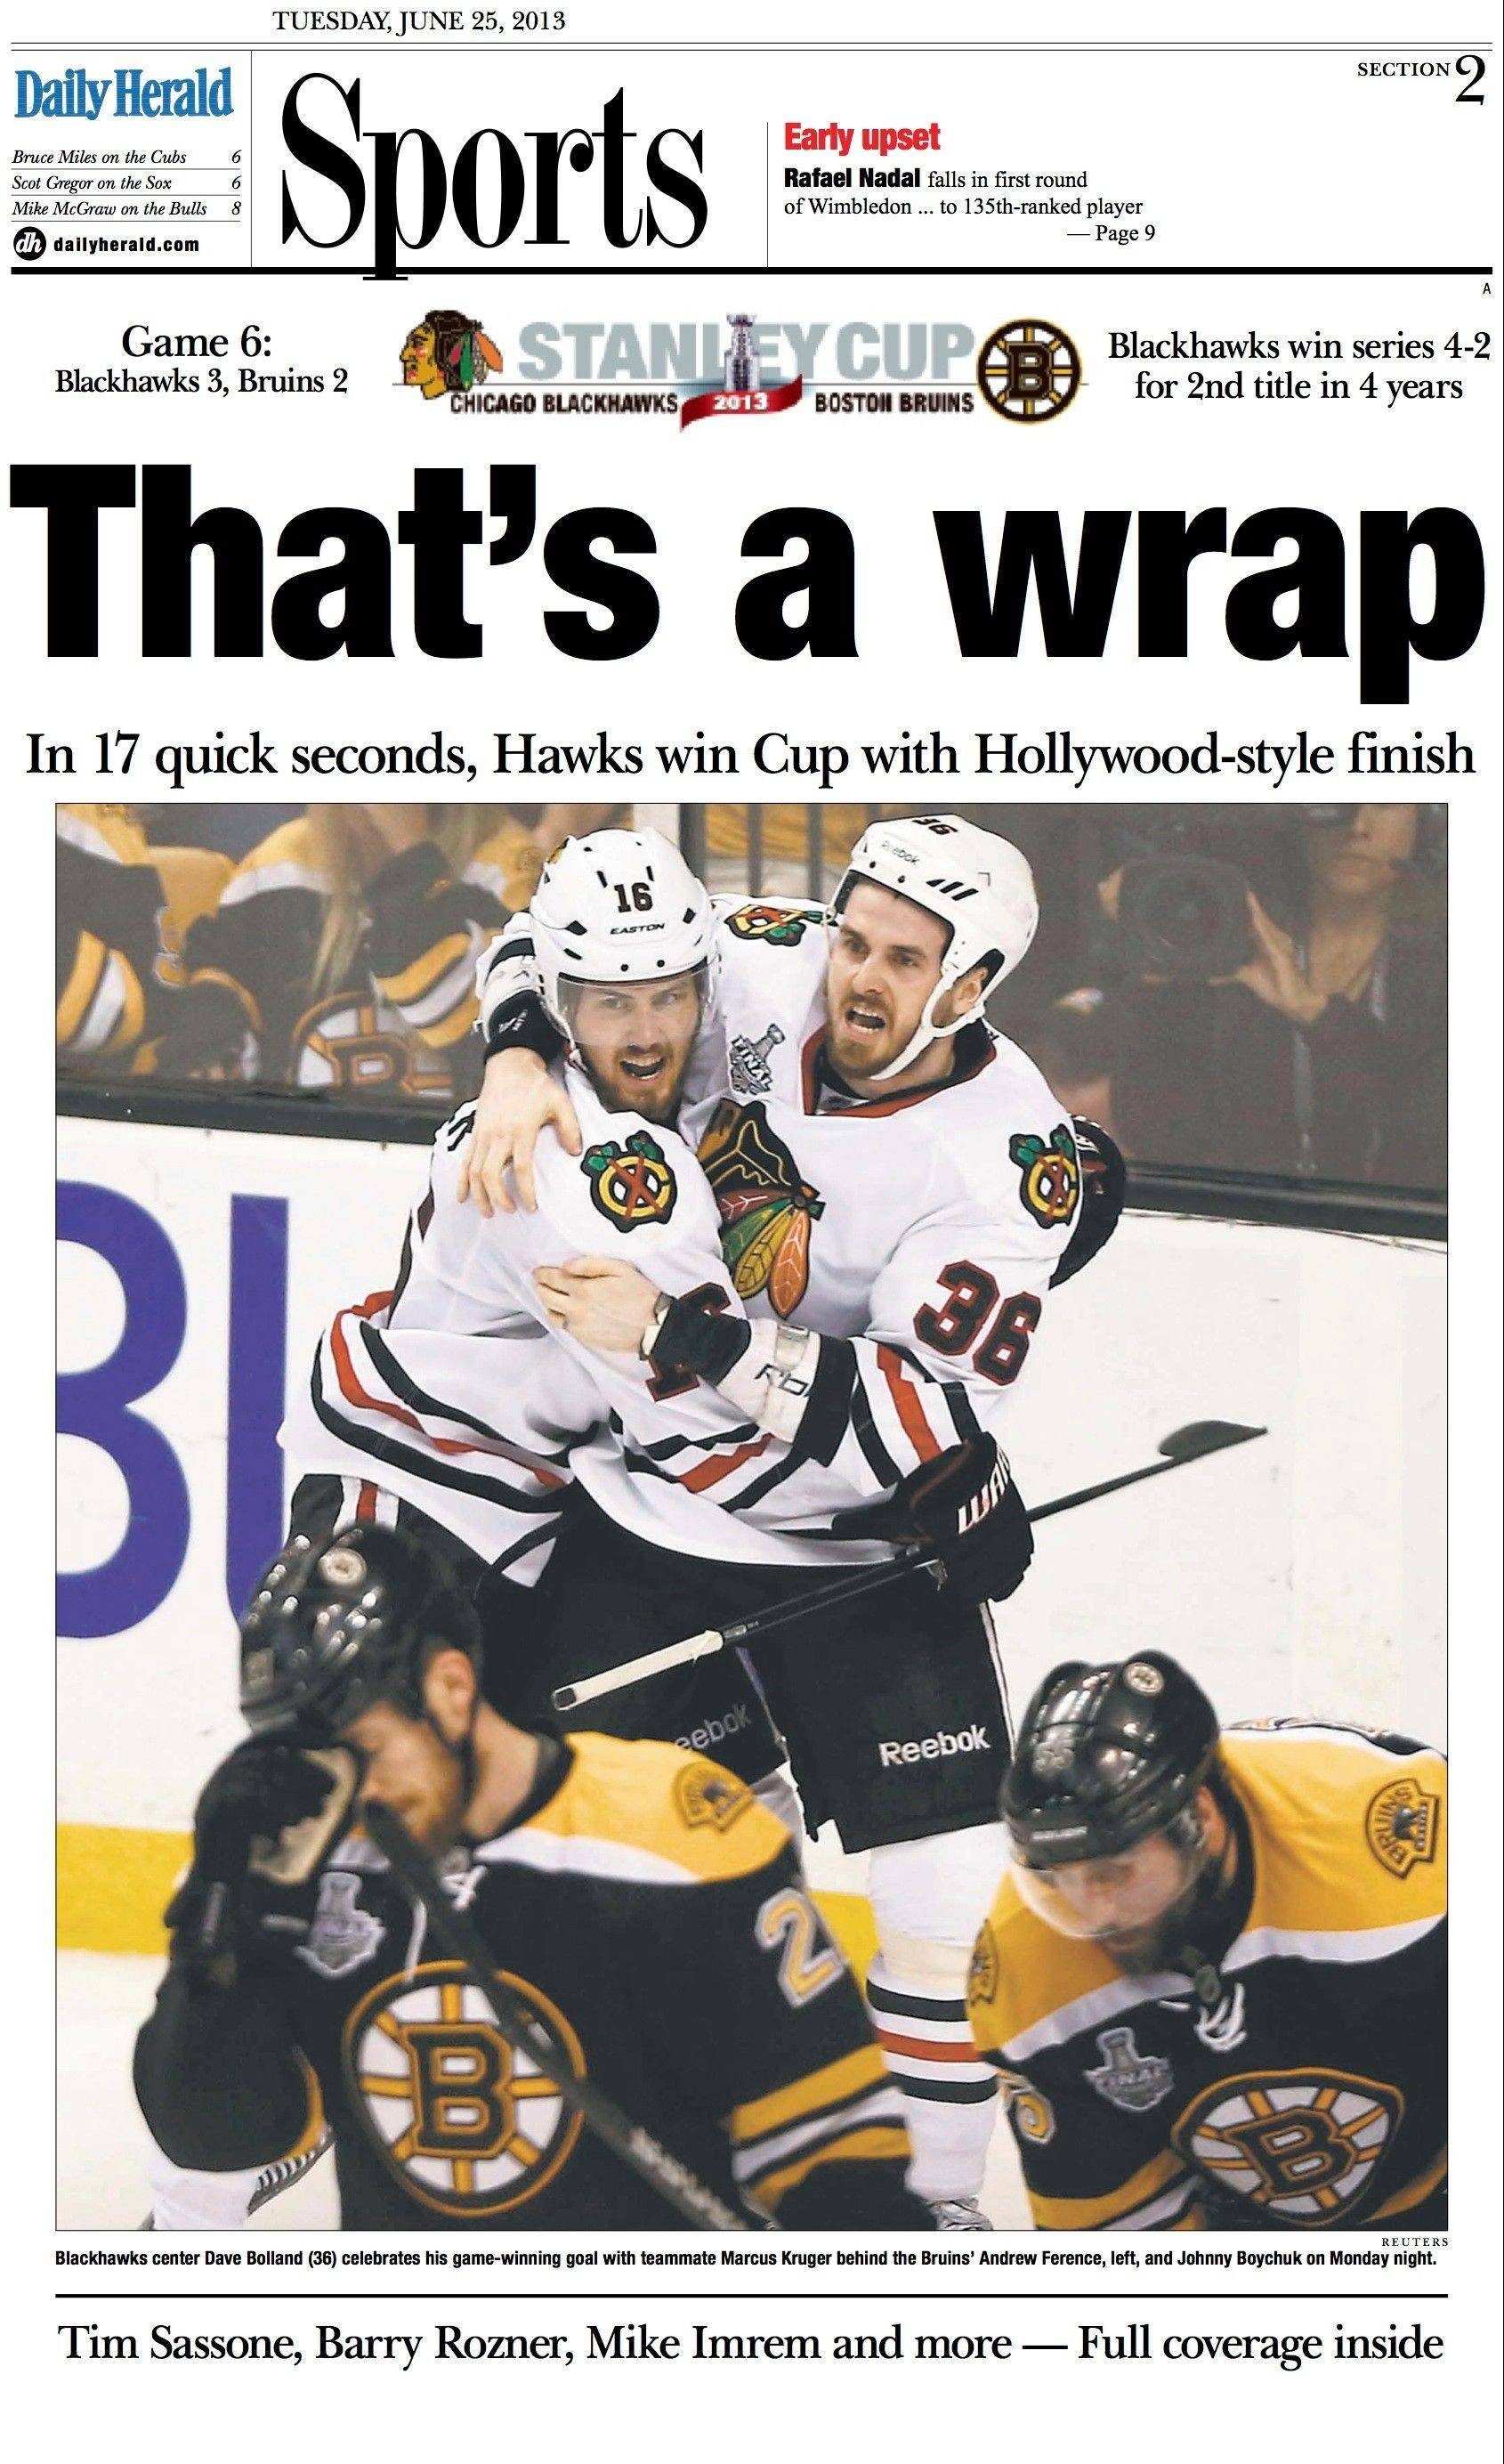 June 25: The Blackhawks were losing Game 6 of the Stanley Cup Finals, but then they scored 2 goals in 17 seconds to shock everyone and win the whole thing.